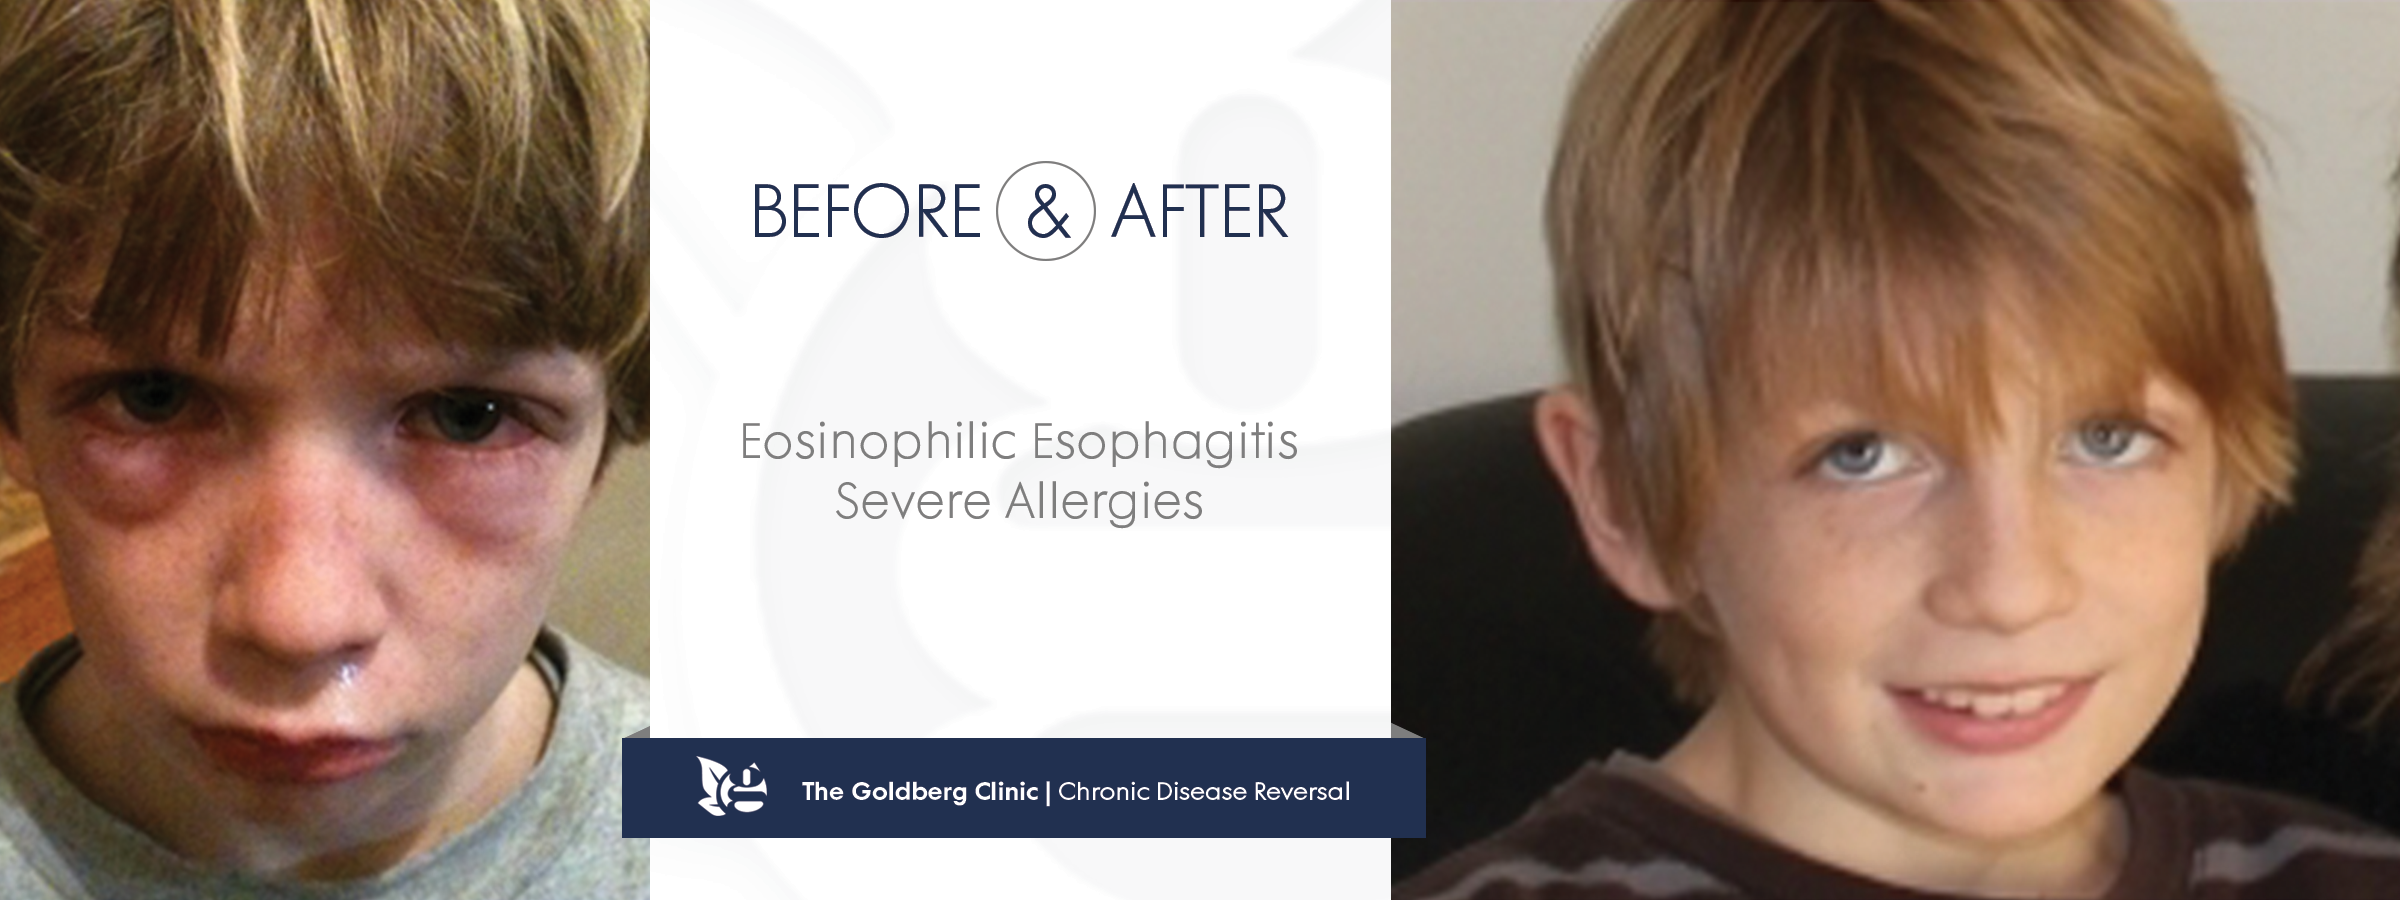 Eosinophilic Esophagitis Reversed